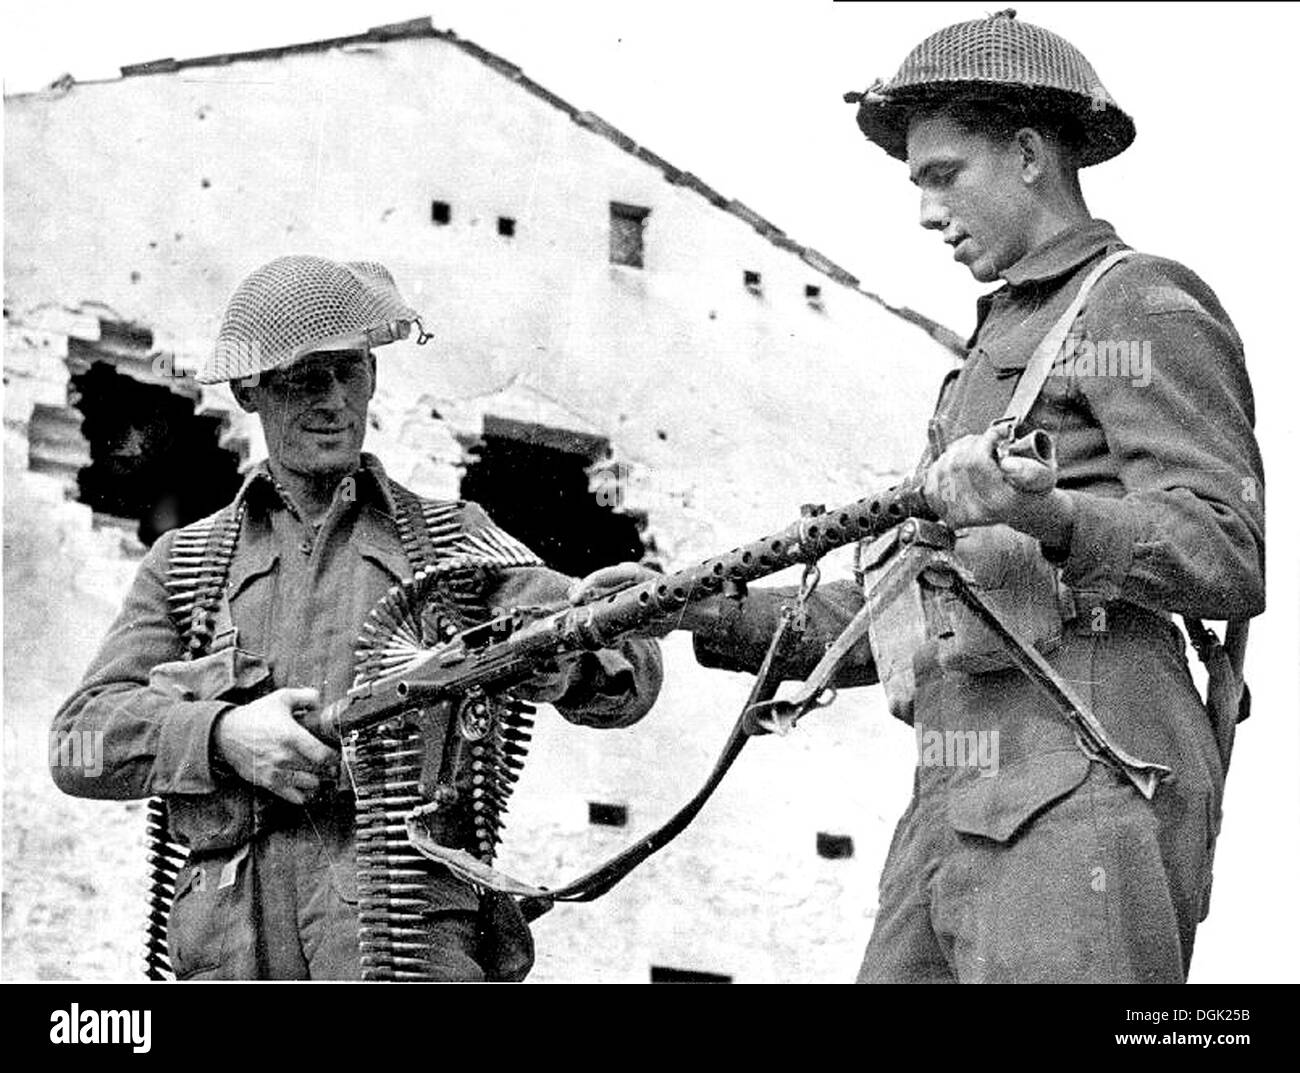 CANADIAN SOLDIERS with captured German MG34 machine gun in Italy in 1944 - Stock Image